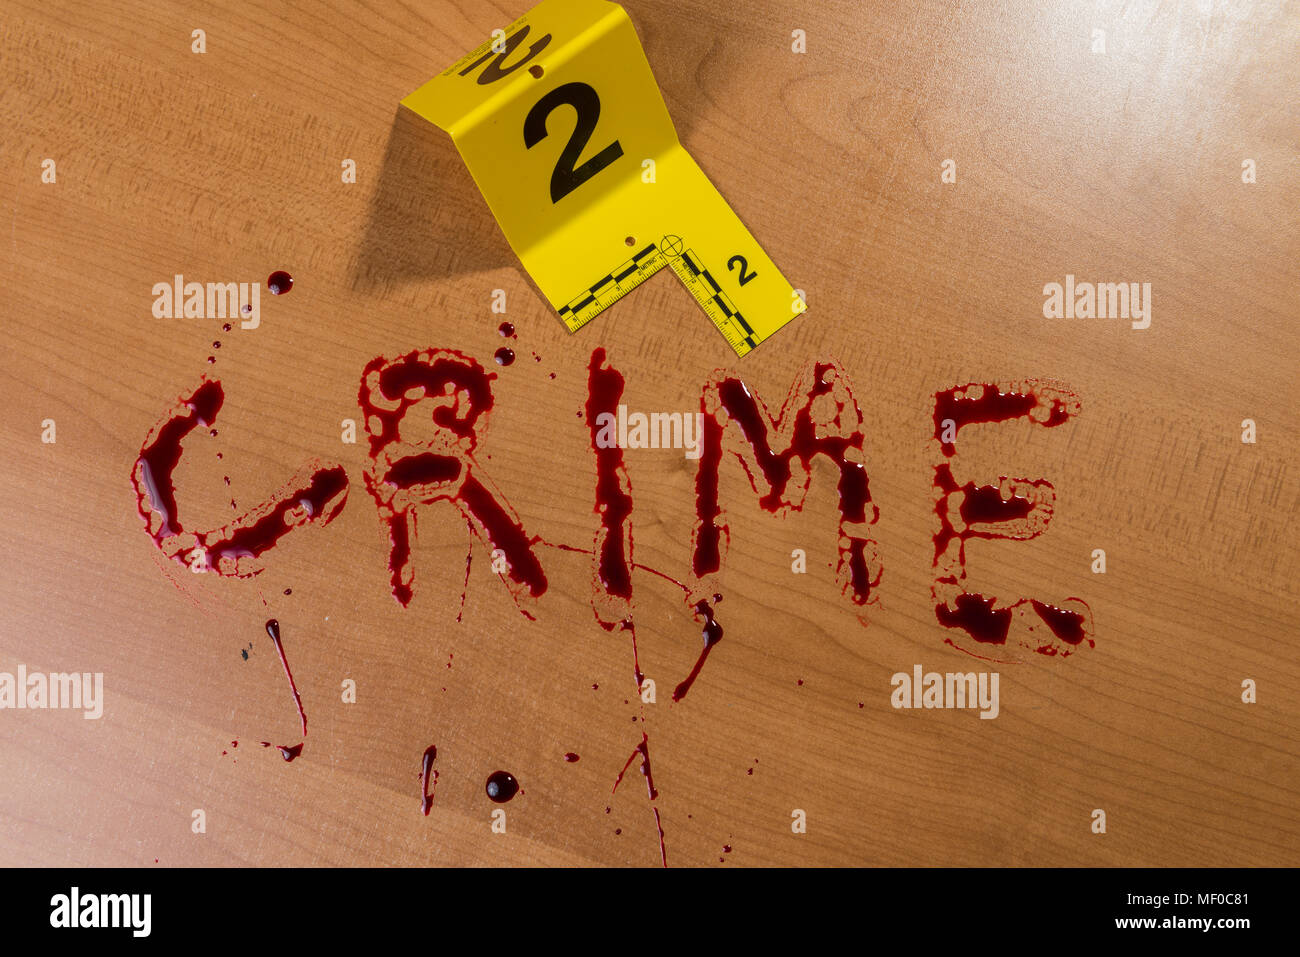 """The word """"crime"""" written in blood on a wood surface beside a bloody knife, both marked by crime scene evidence markers. - Stock Image"""